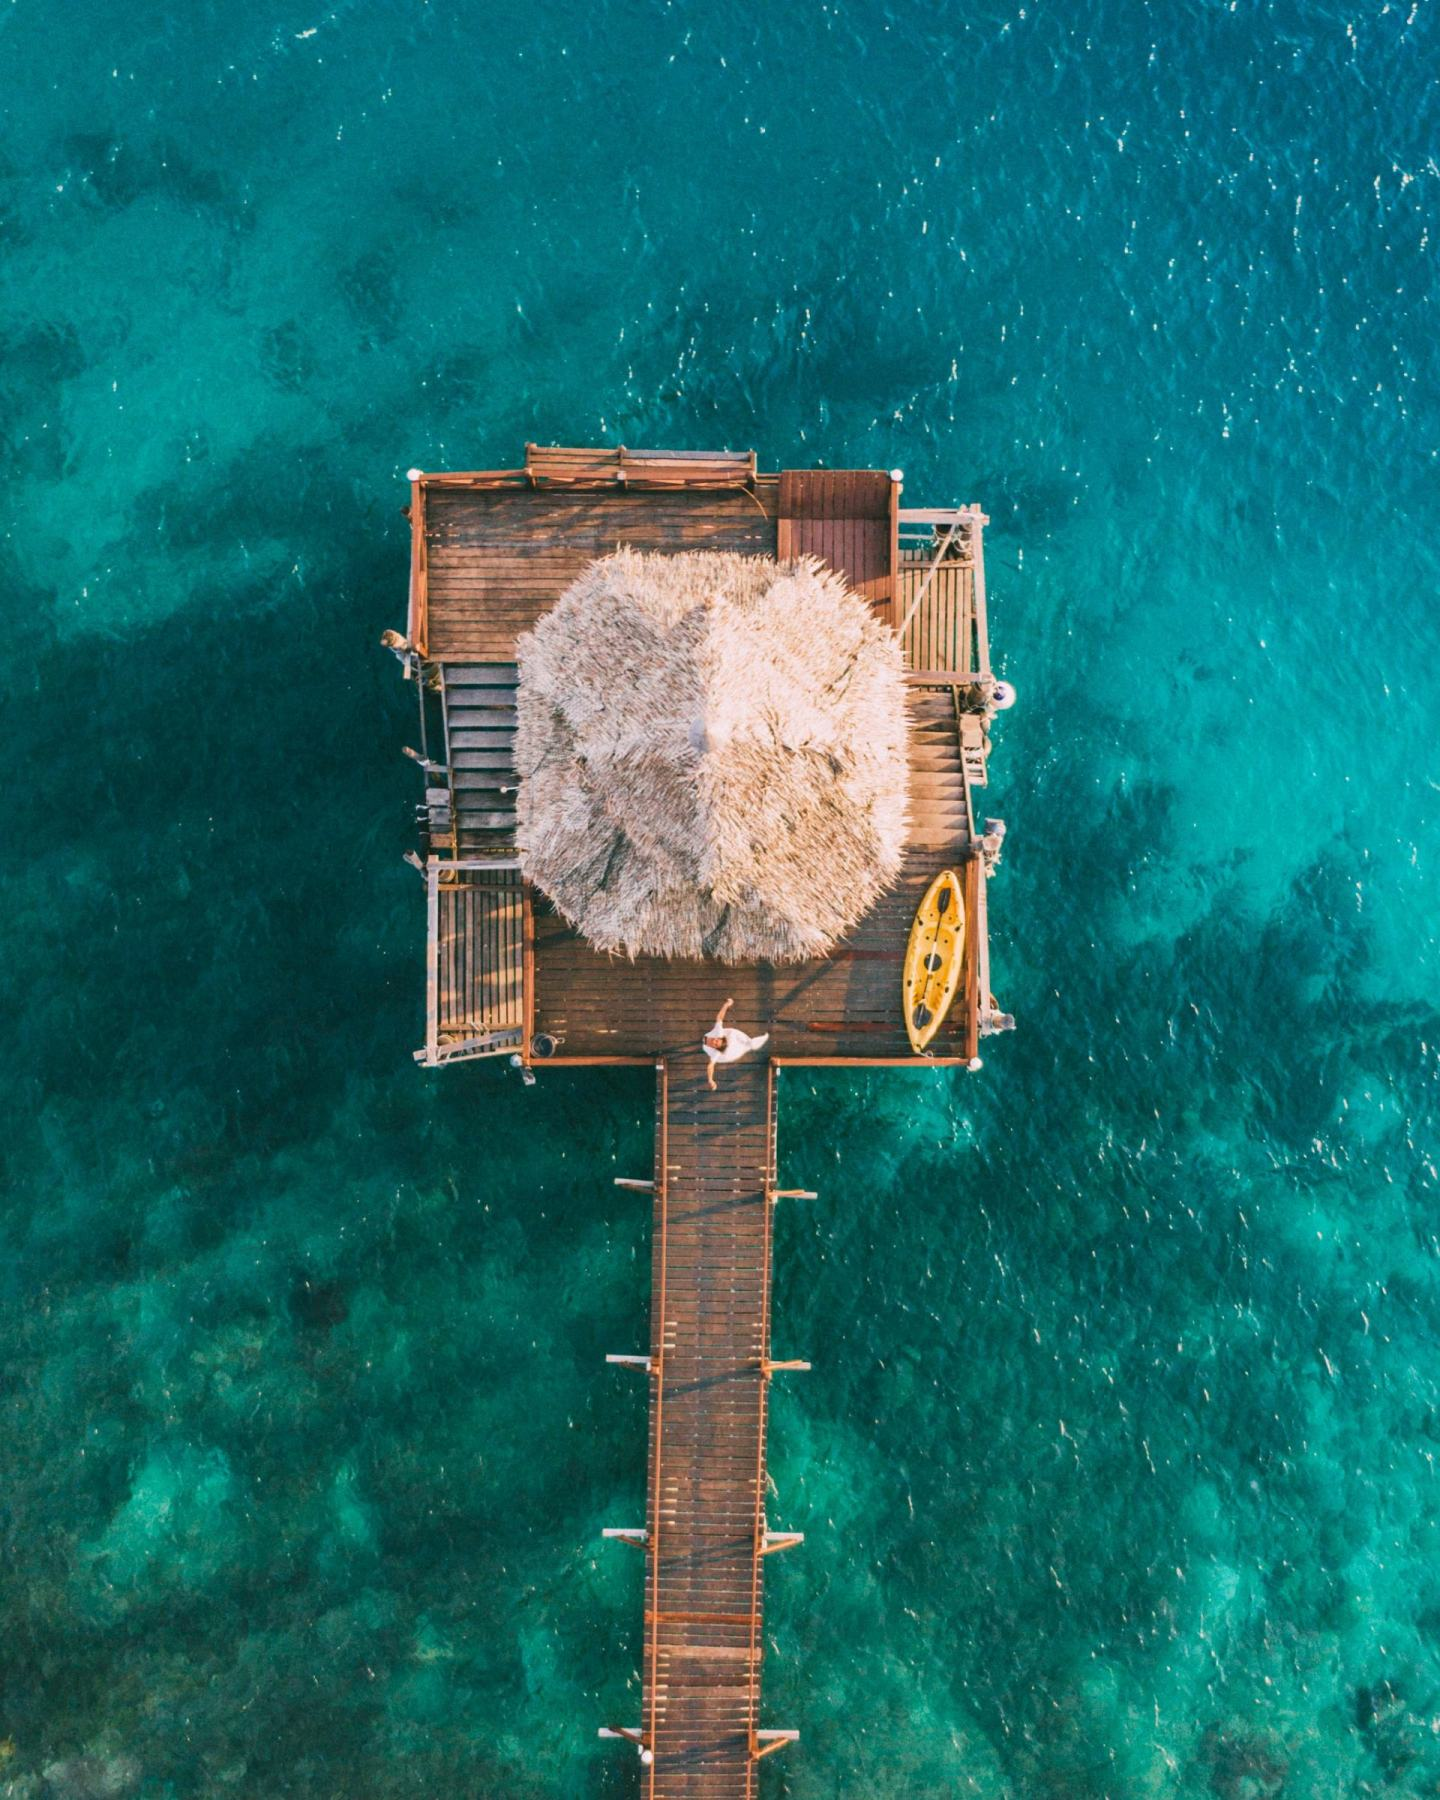 women walking in a jetty view from the sky